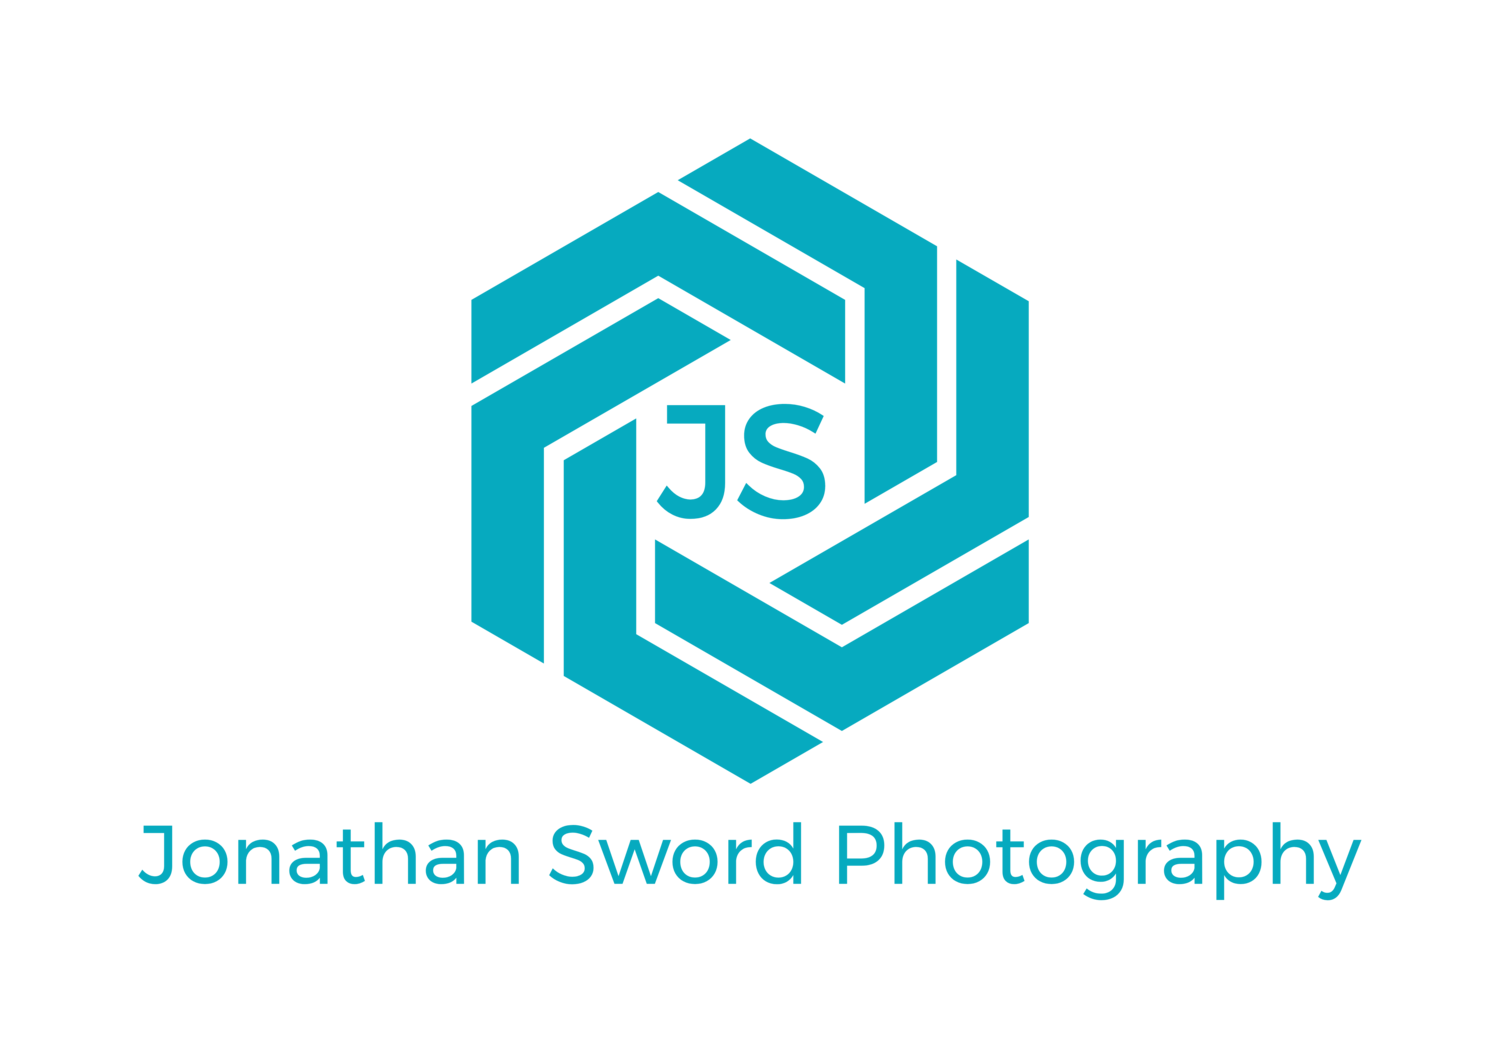 JONATHAN SWORD PHOTOGRAPHY